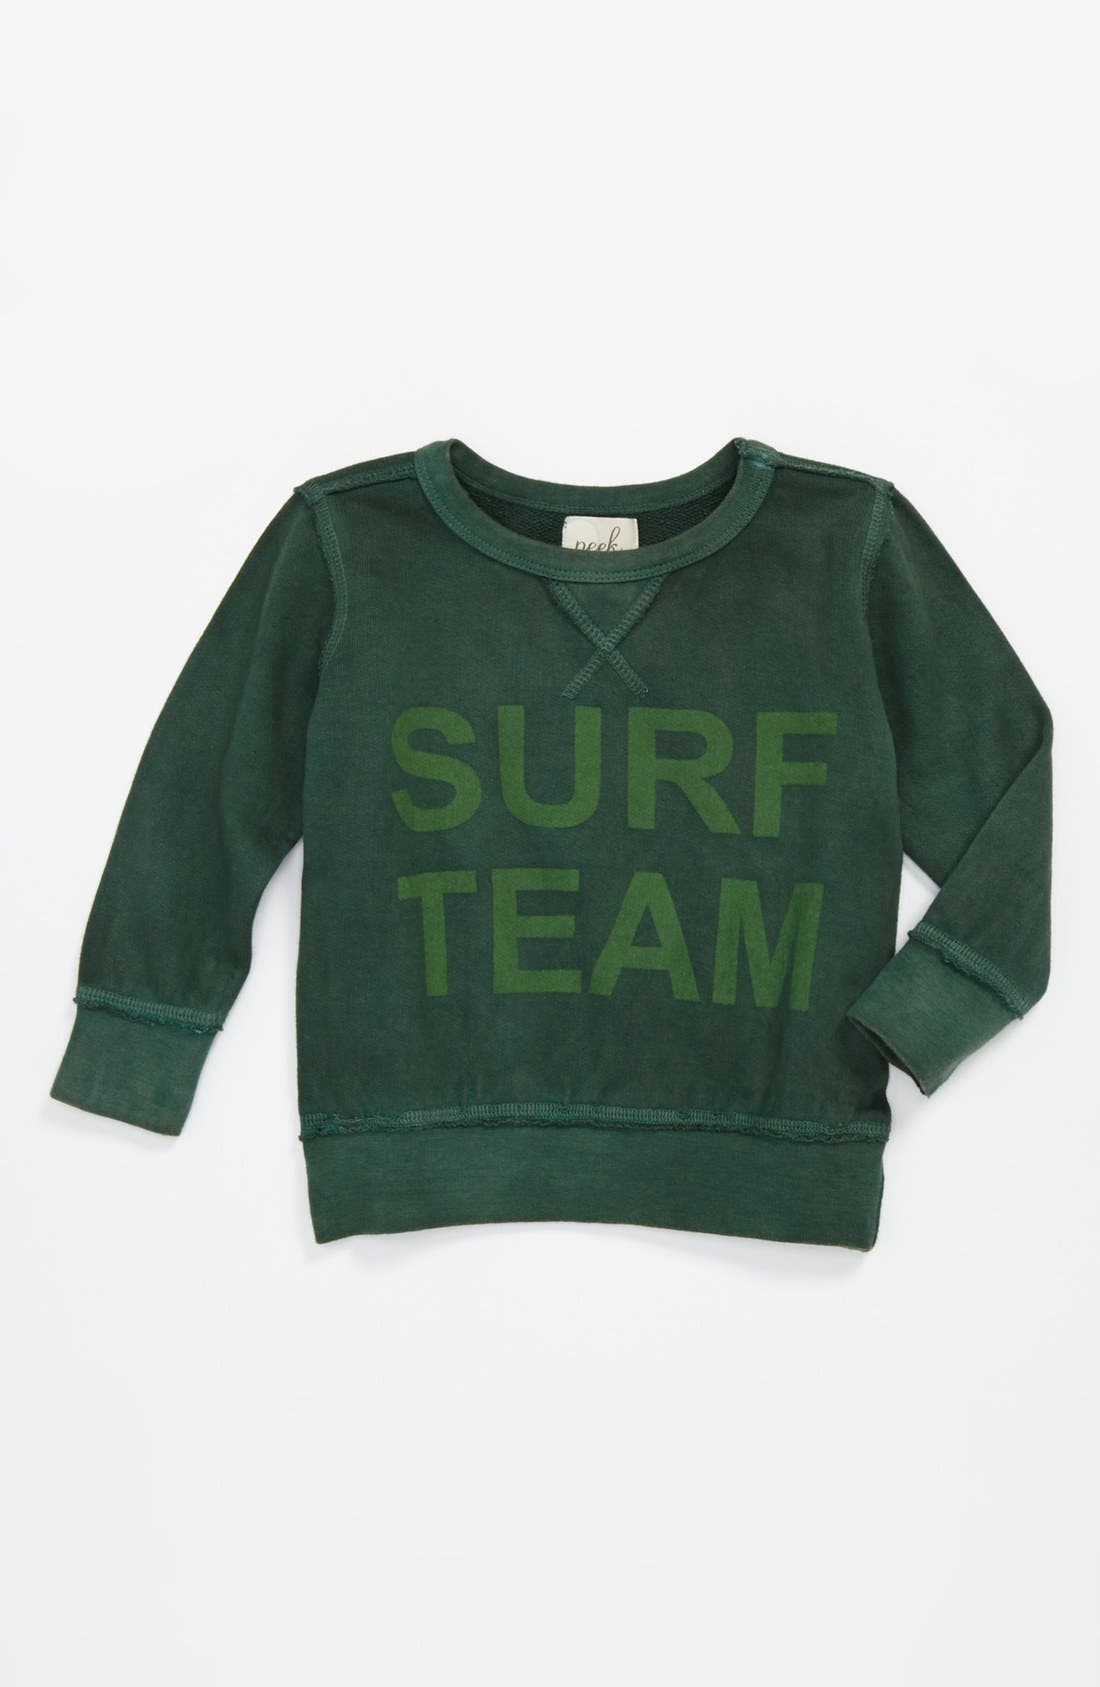 Alternate Image 1 Selected - Peek 'Surf Team' Sweatshirt (Baby Boys)